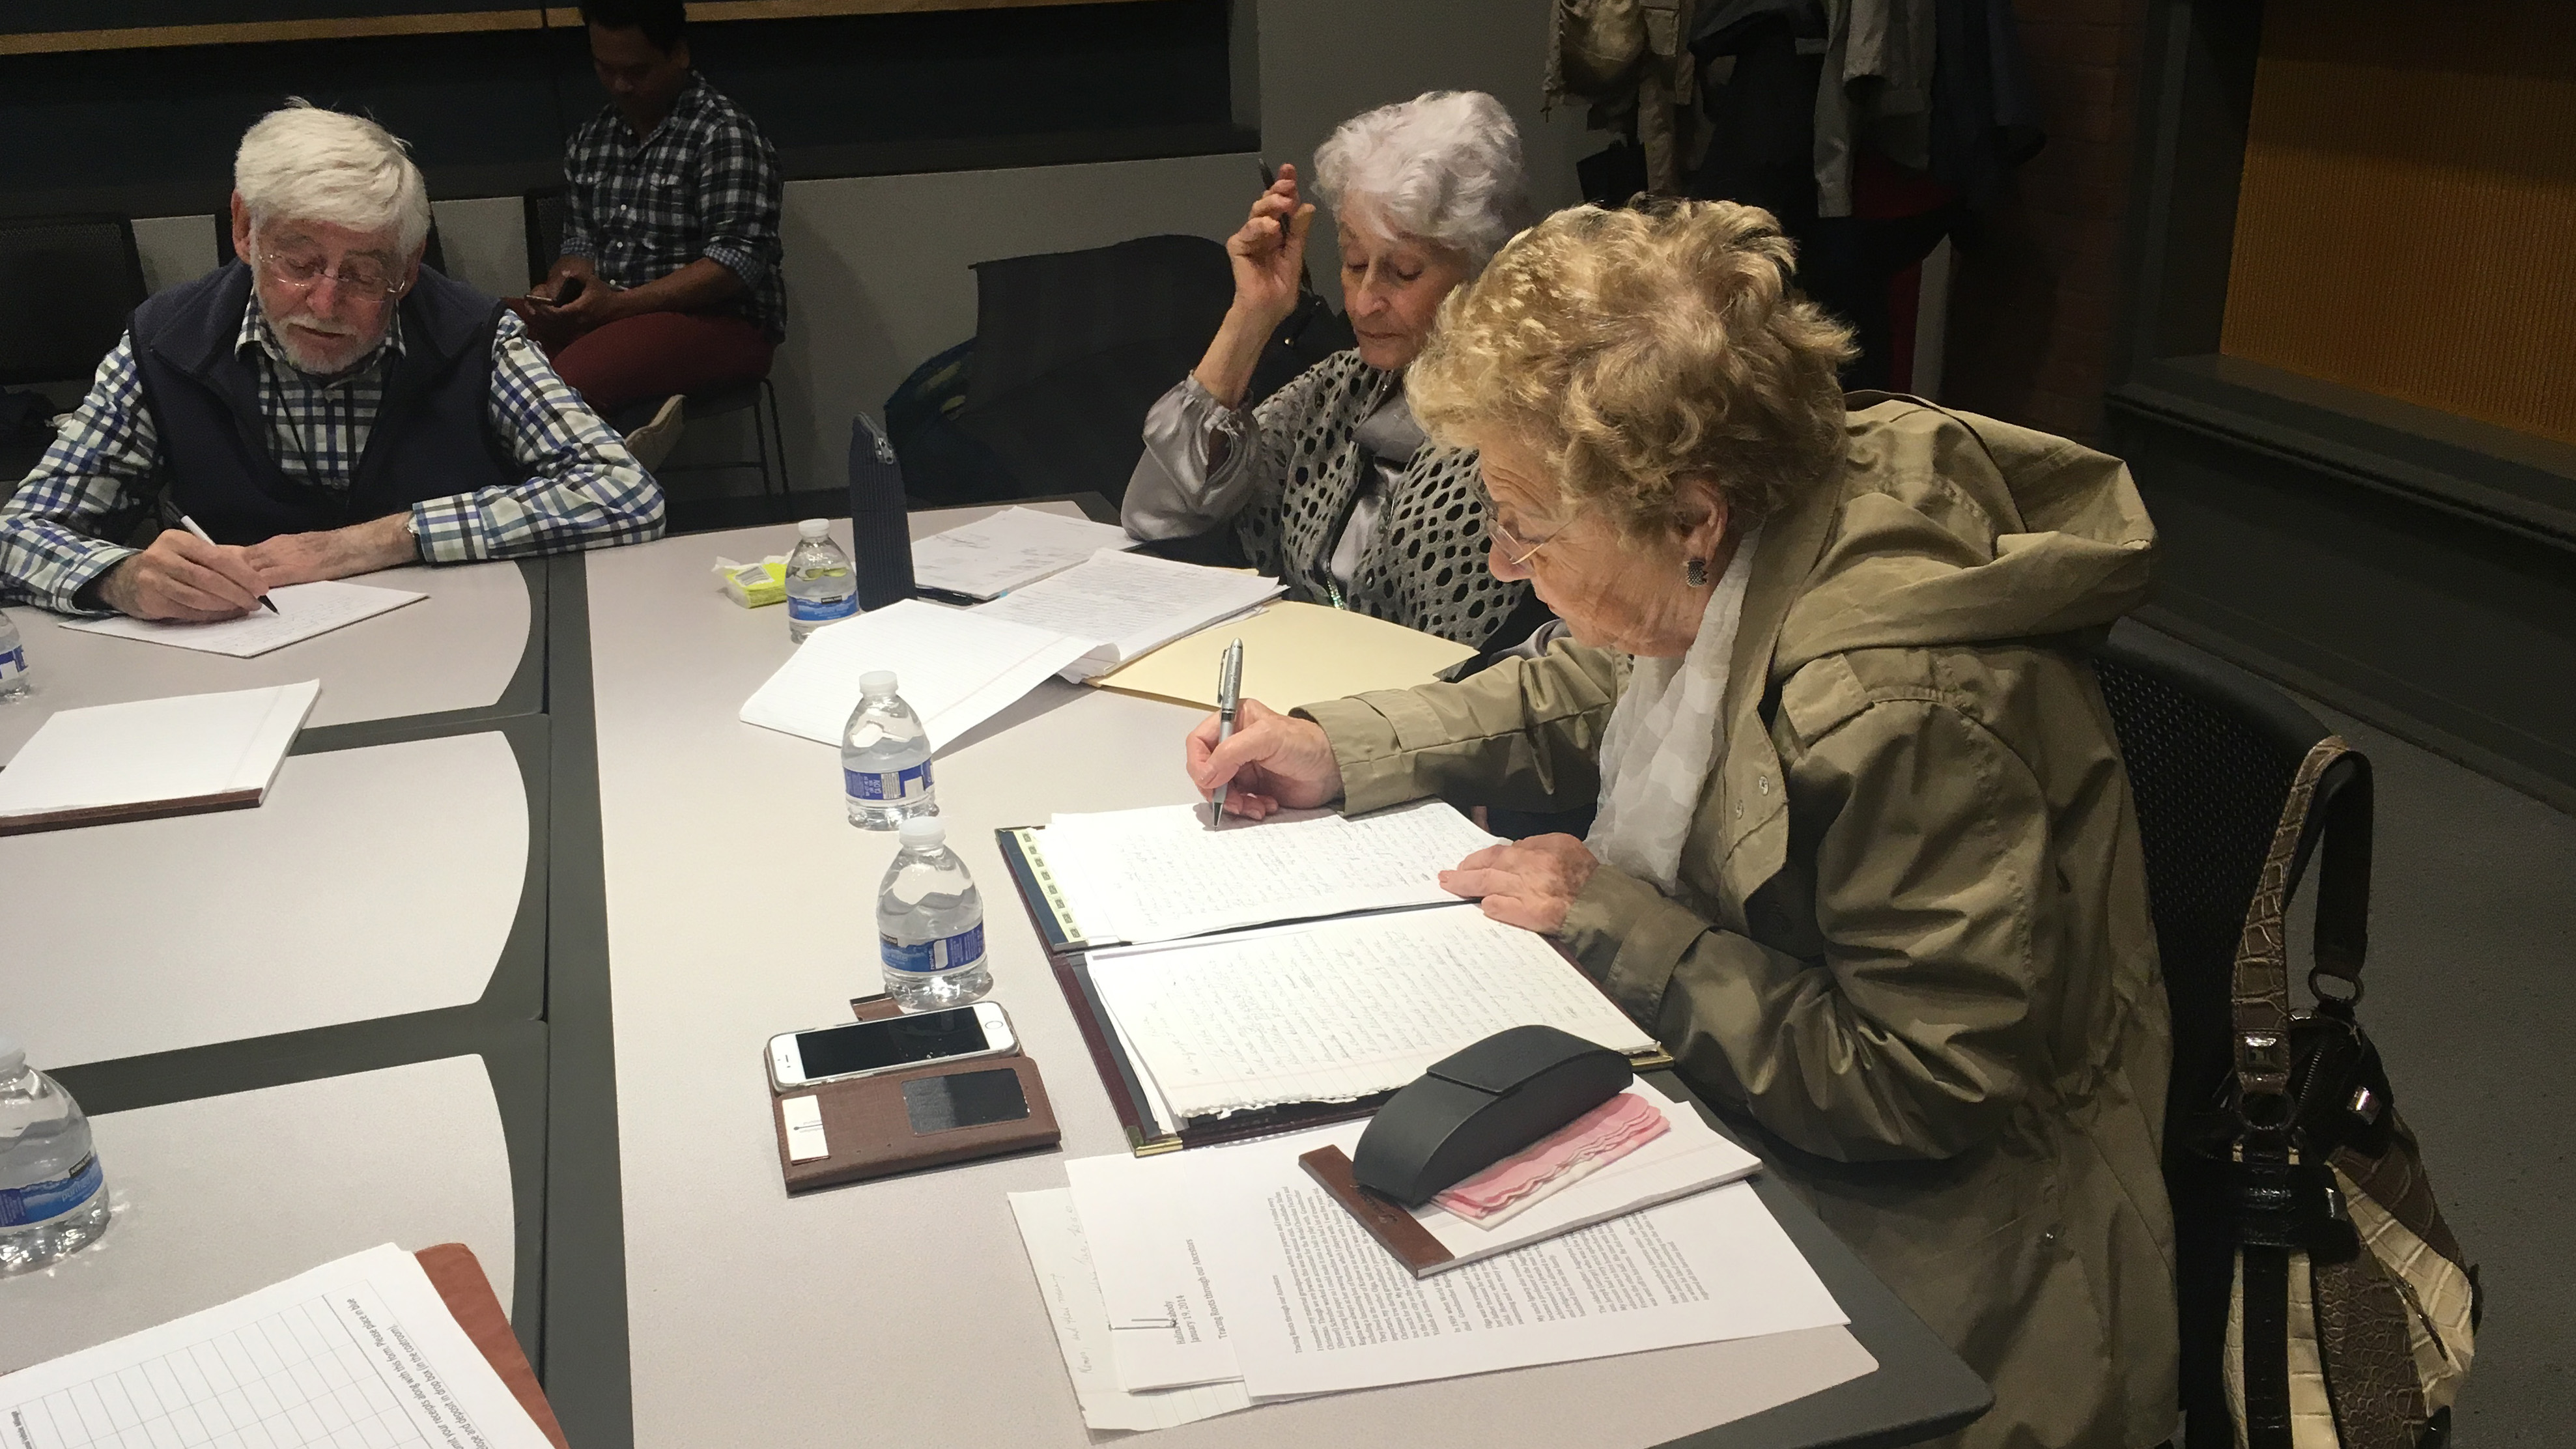 Three elderly Holocaust survivors sit at a table writing.